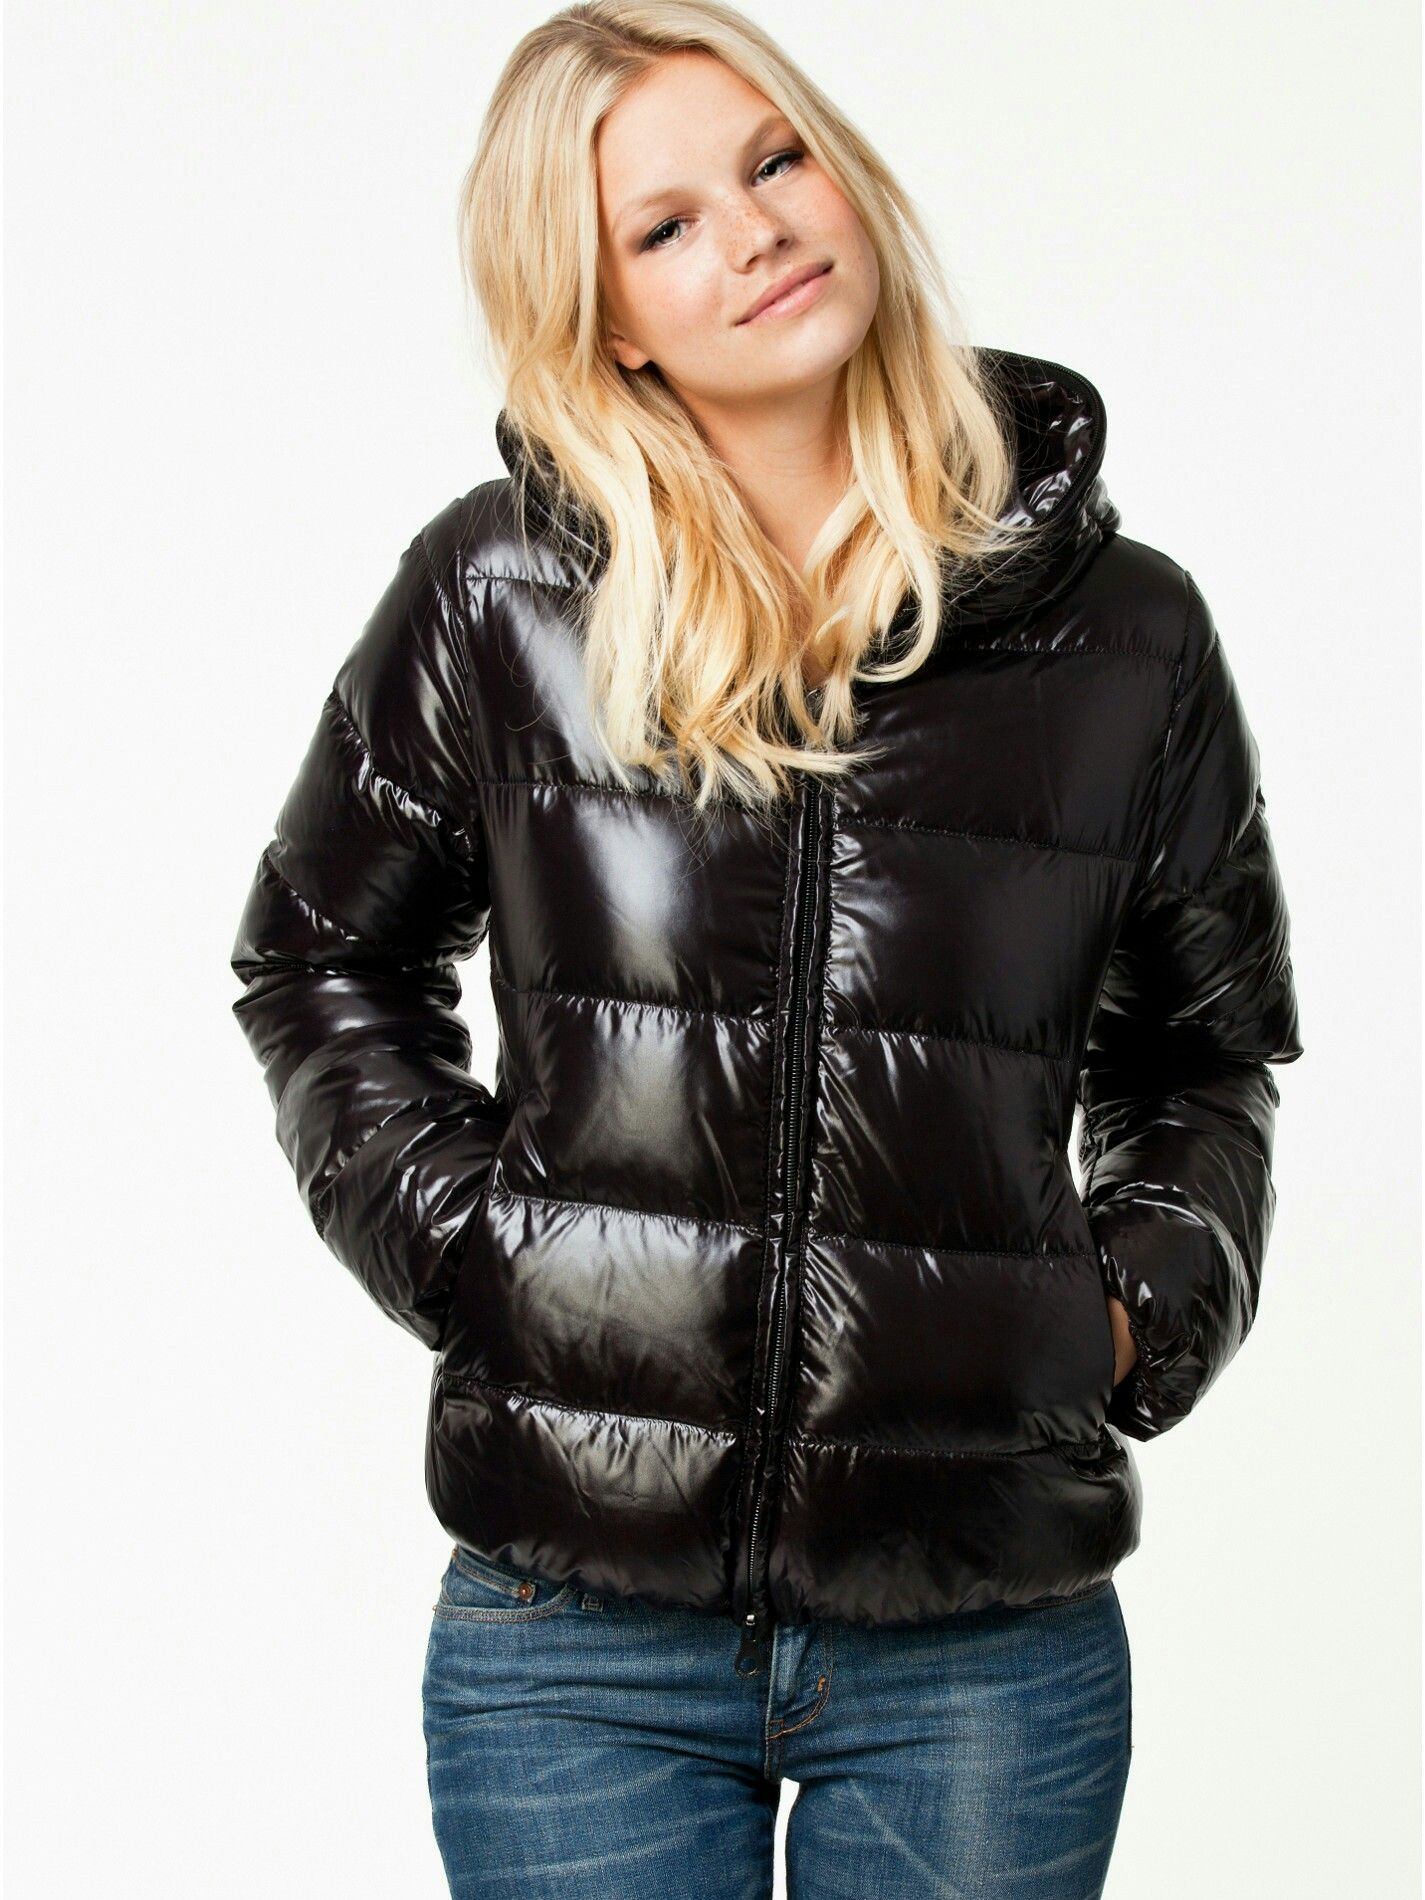 competitive price 536e4 8dd3d Pin von Ron auf Those beautiful girls in there down jackets ...